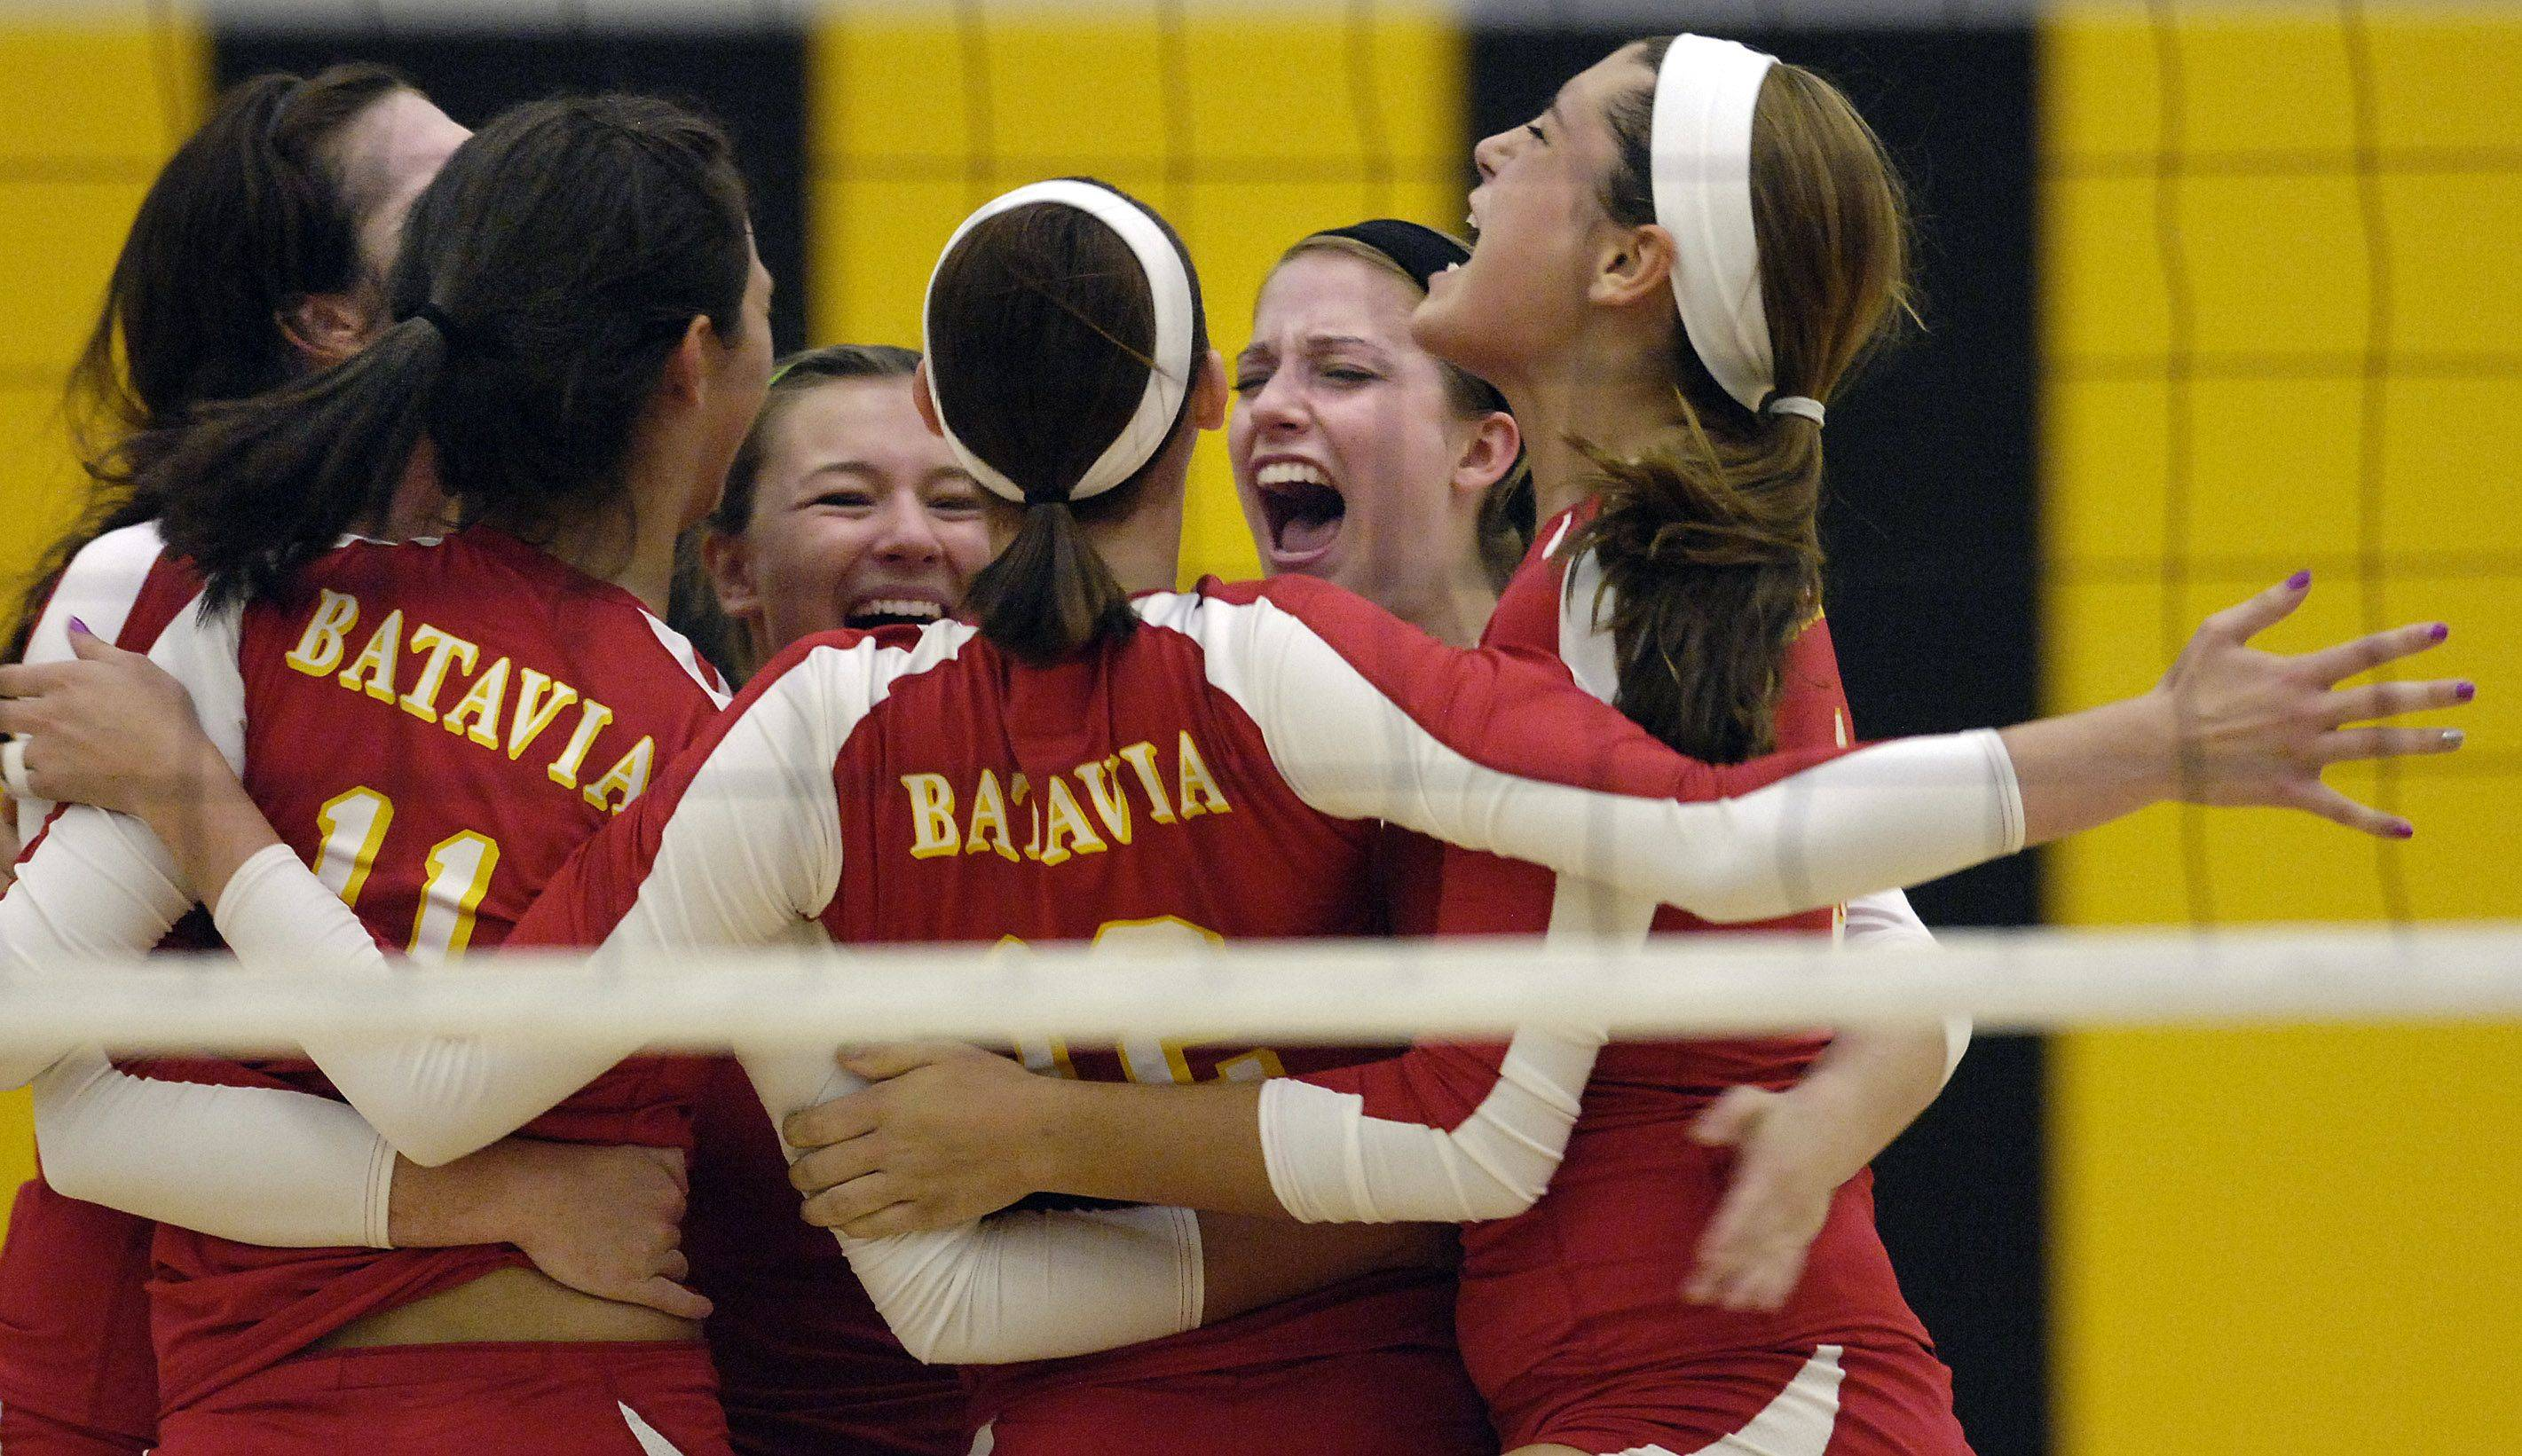 Batavia celebrates it's 2-game victory over Metea Valley Thursday.